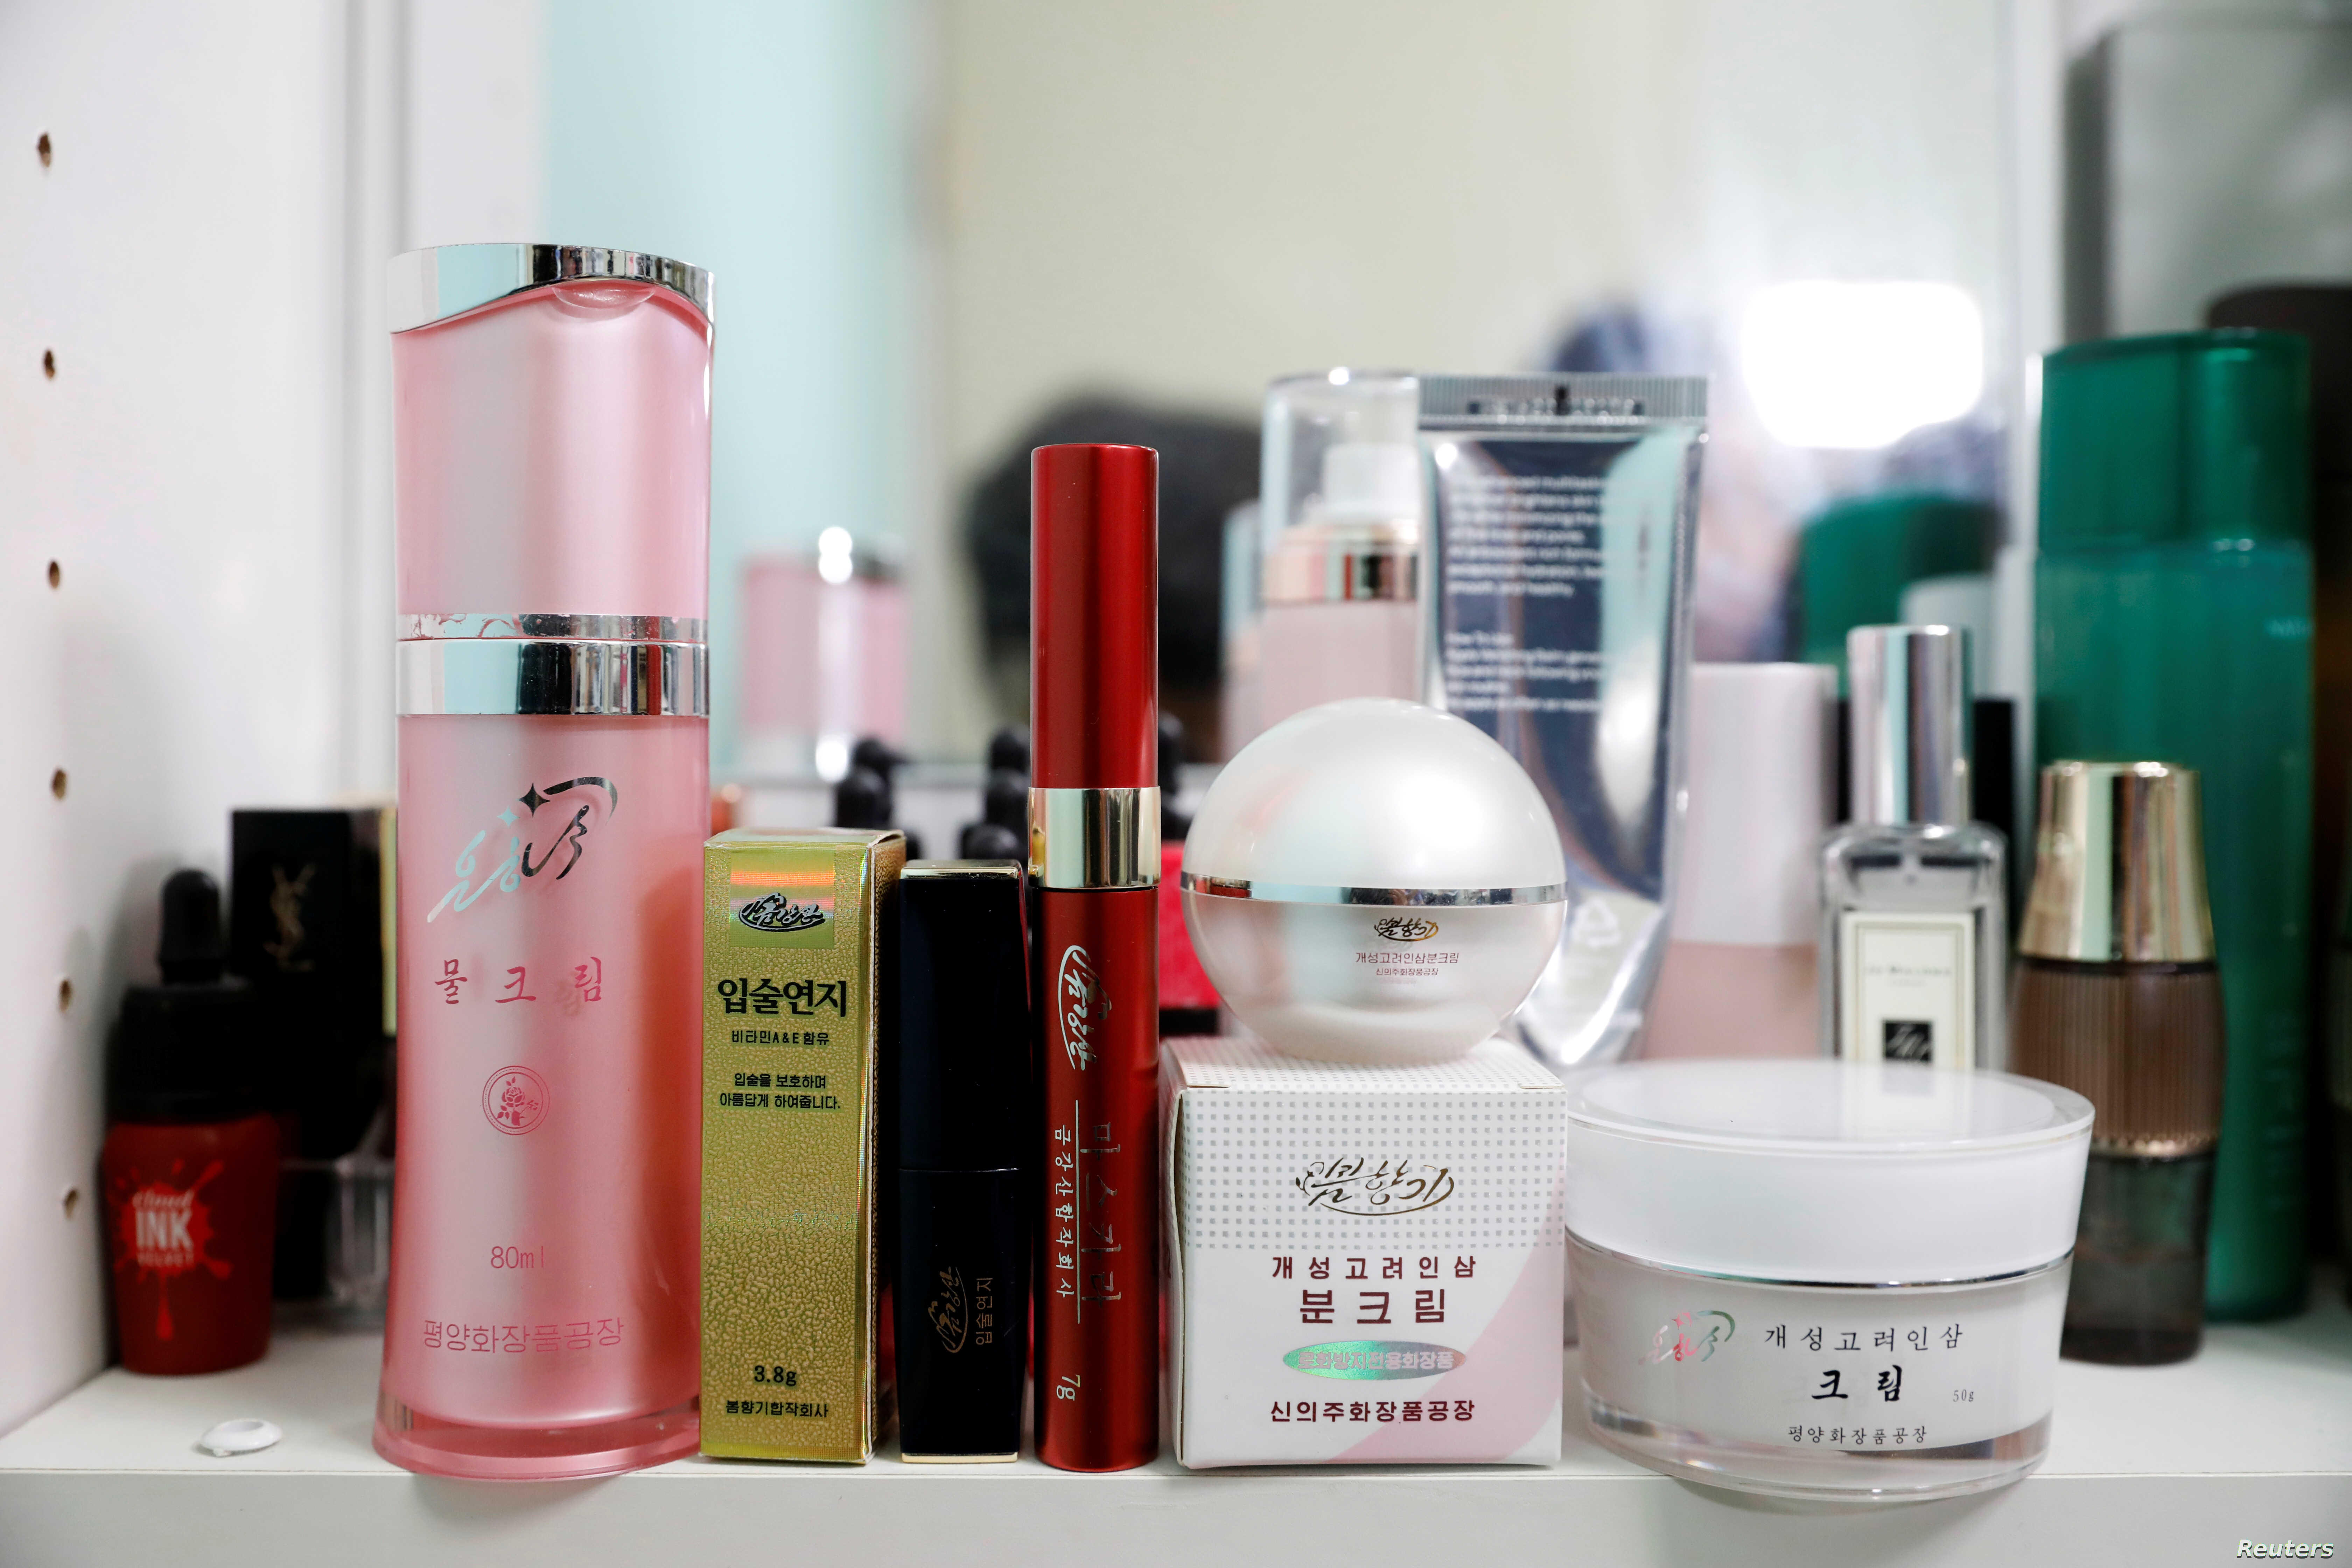 North Korean cosmetic products, front line, are seen on a dressing table in Seoul, South Korea, June 11, 2019.